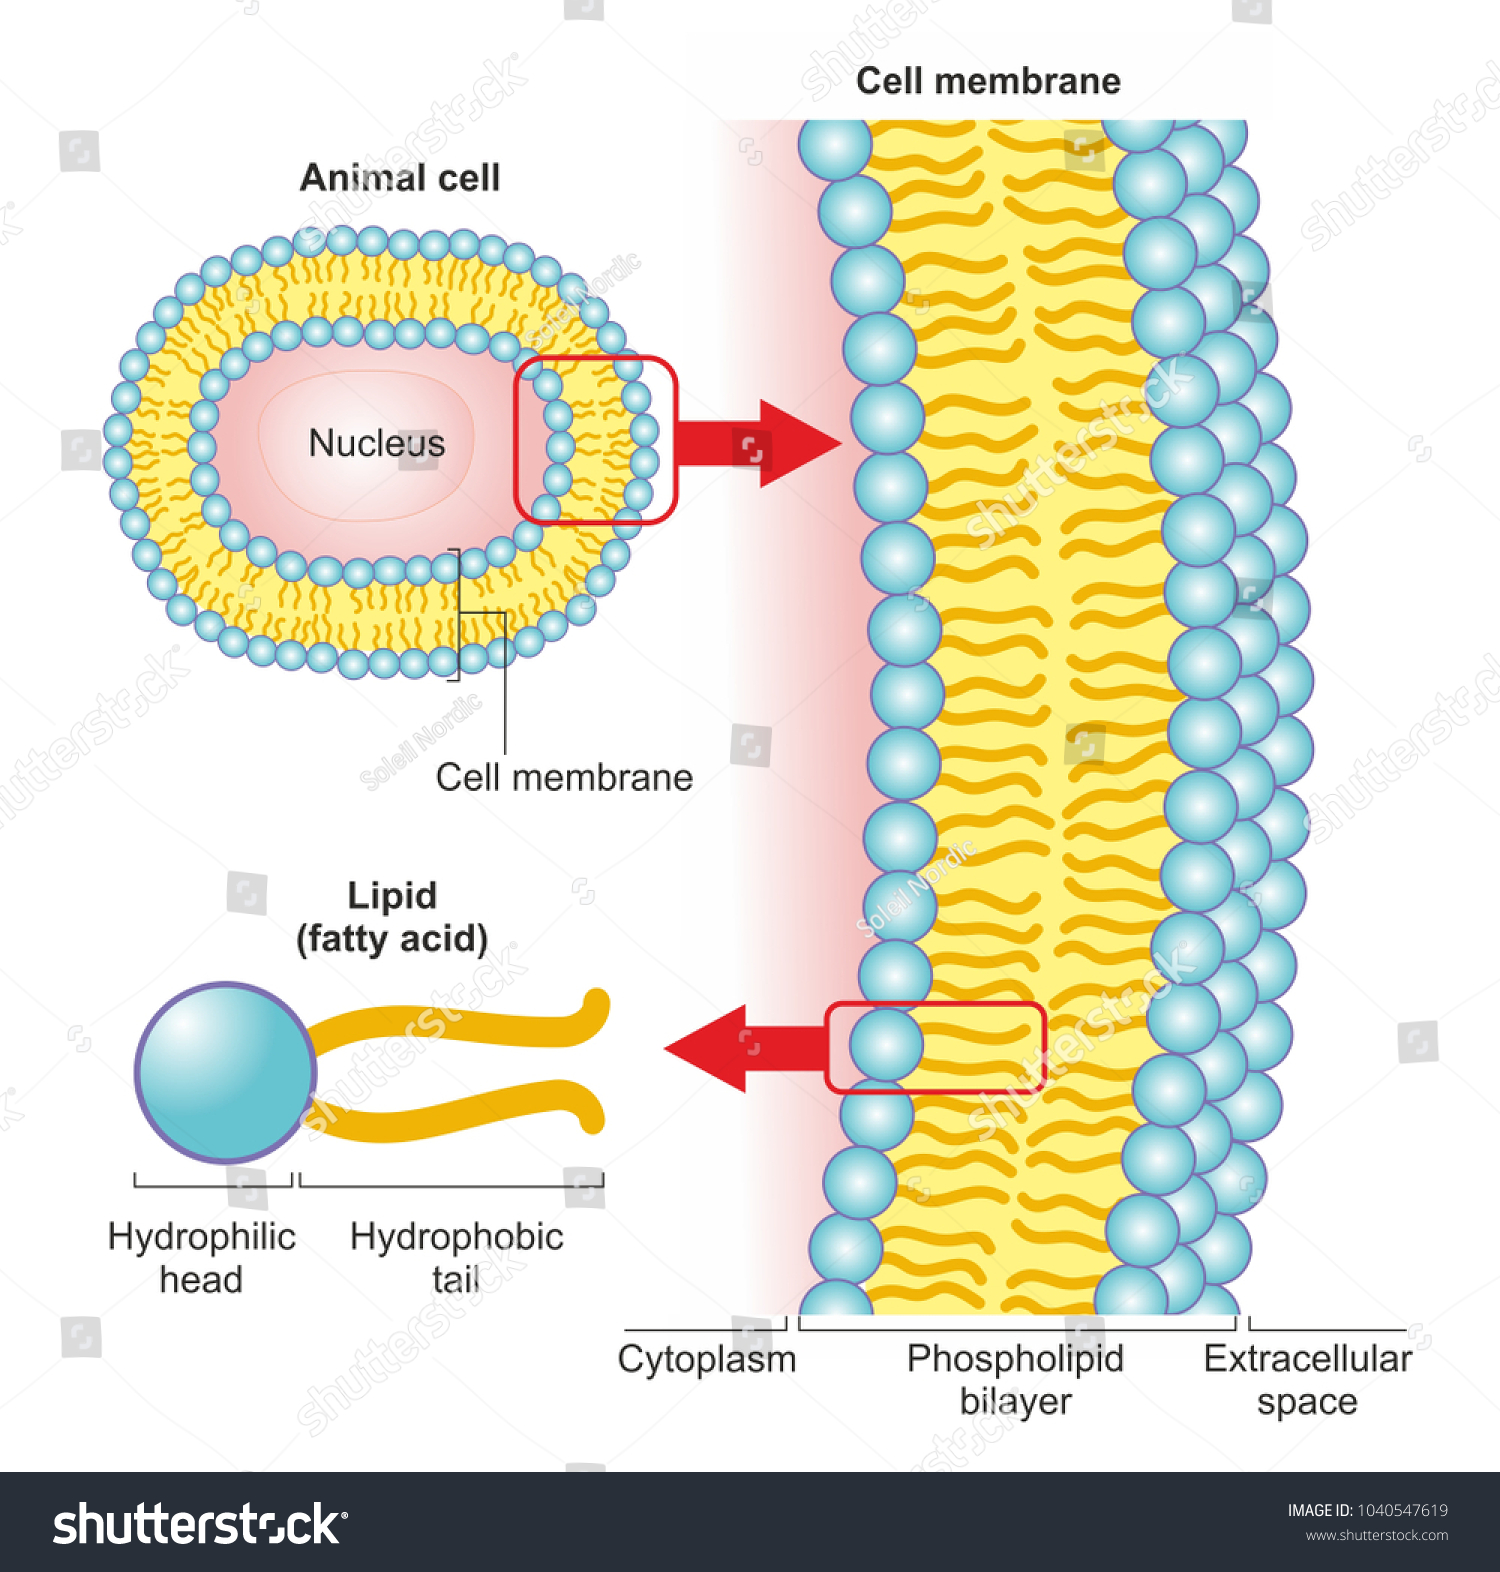 hight resolution of the phospholipid bilayer of an animal cell is a thin membrane made of two layers of